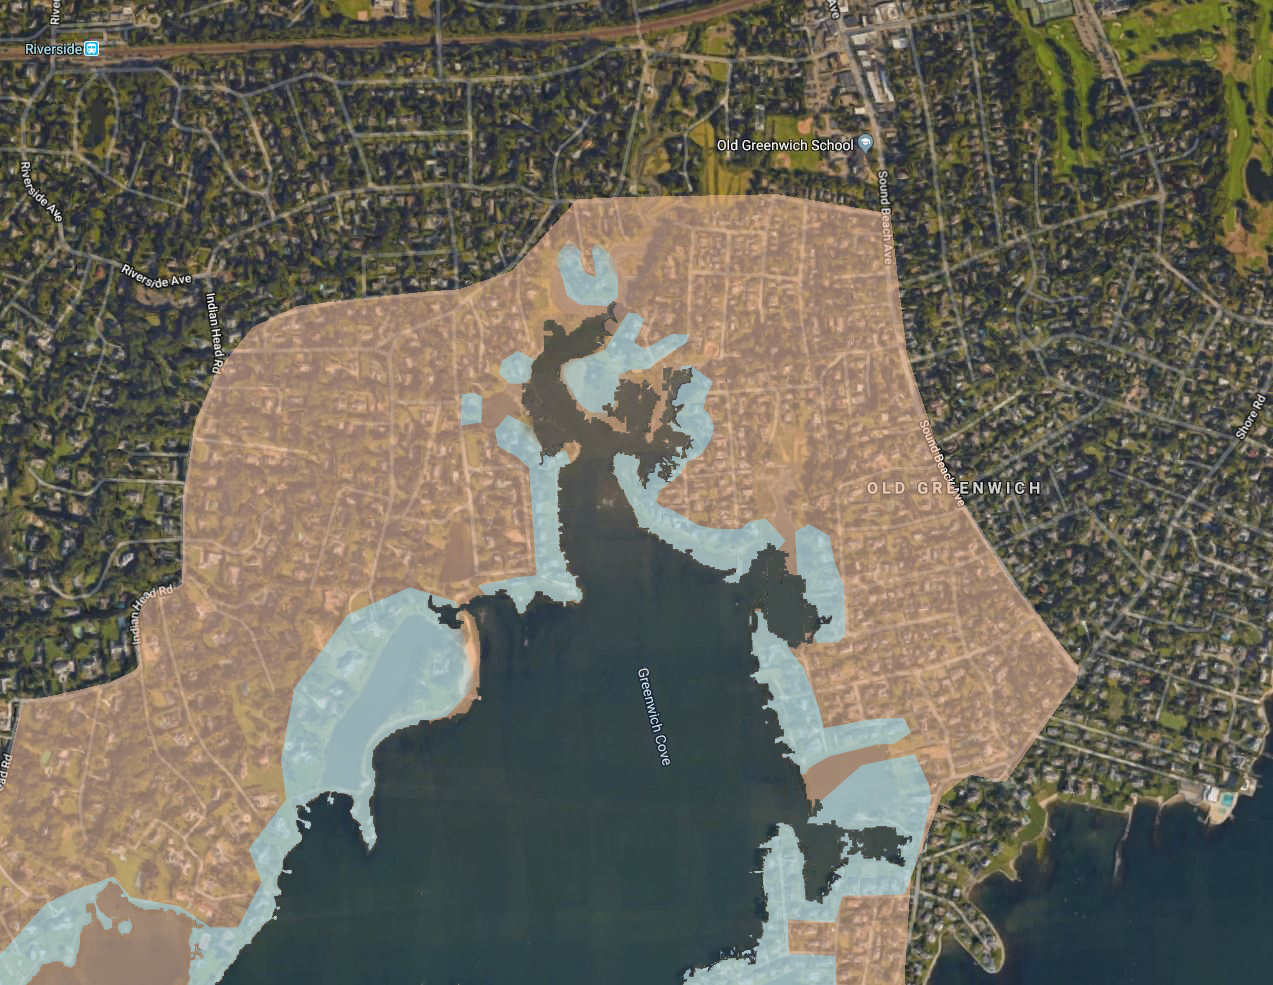 While the orange shading encompasses the waterfront community of Greenwich Cove, the blue shading illustrates the properties that are located directly on the waterfront.  (Image via Google Earth)